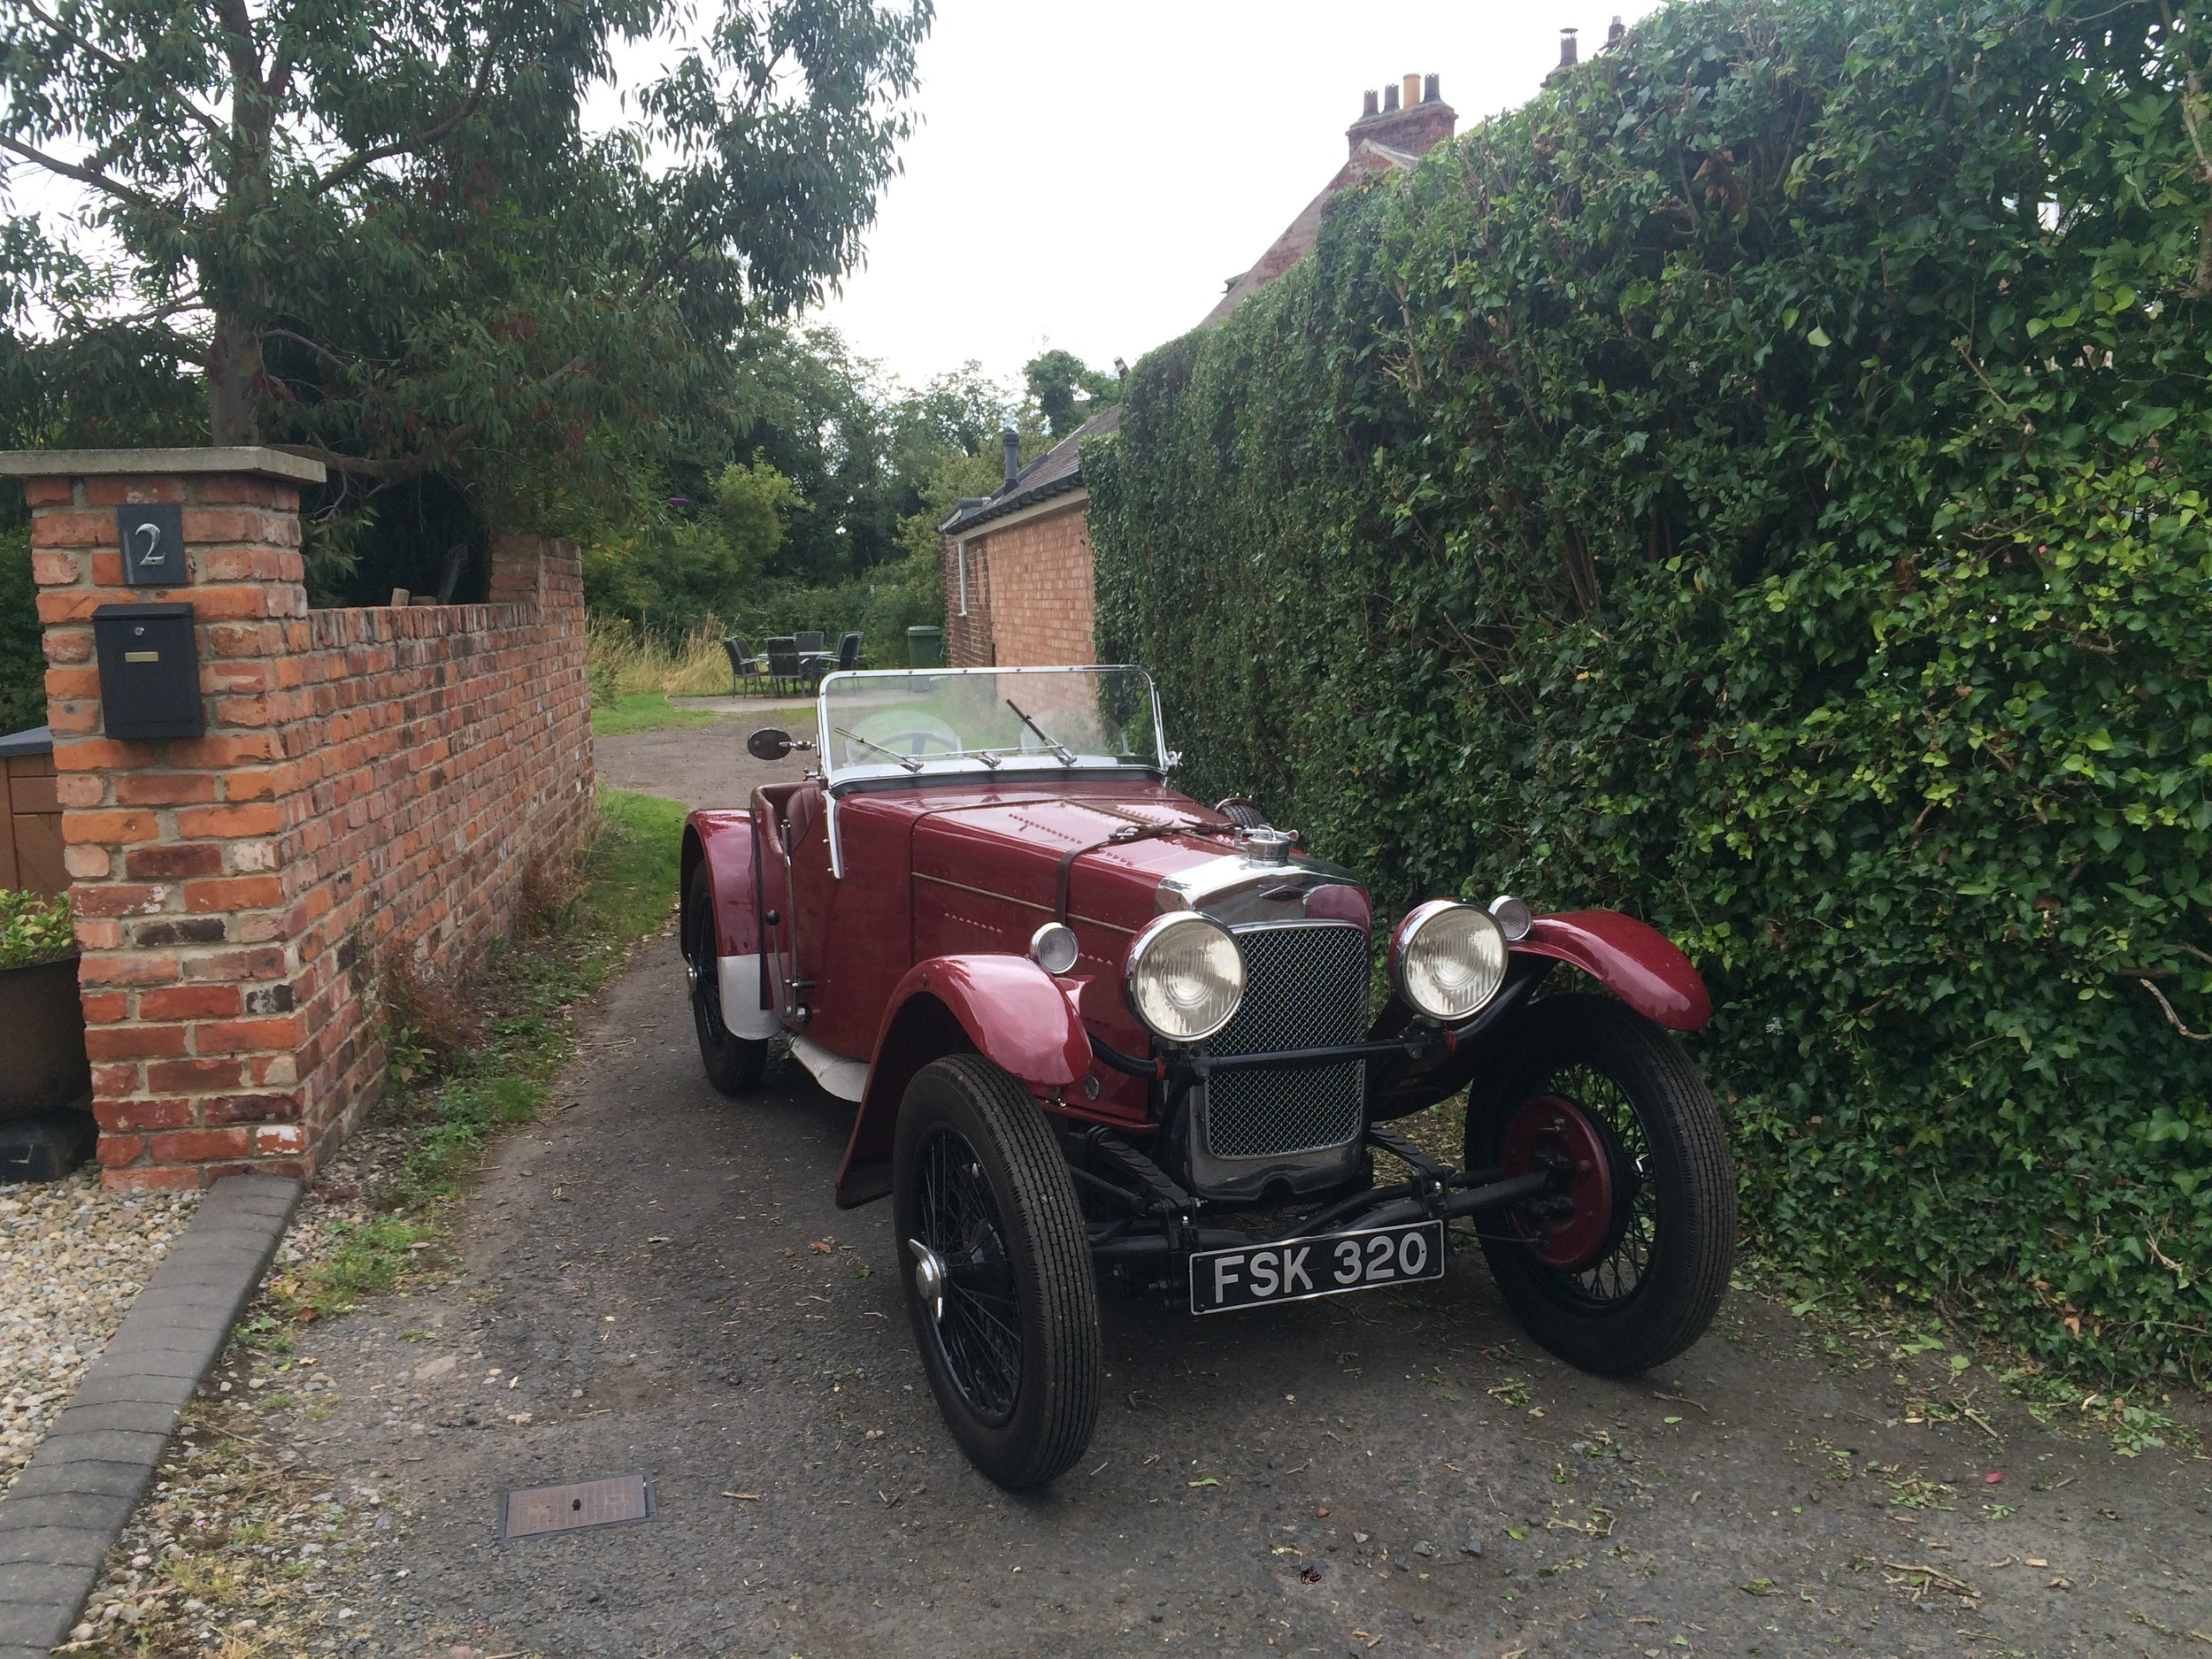 And in his spare time: one of Carl's vintage motorcar restoration projects.